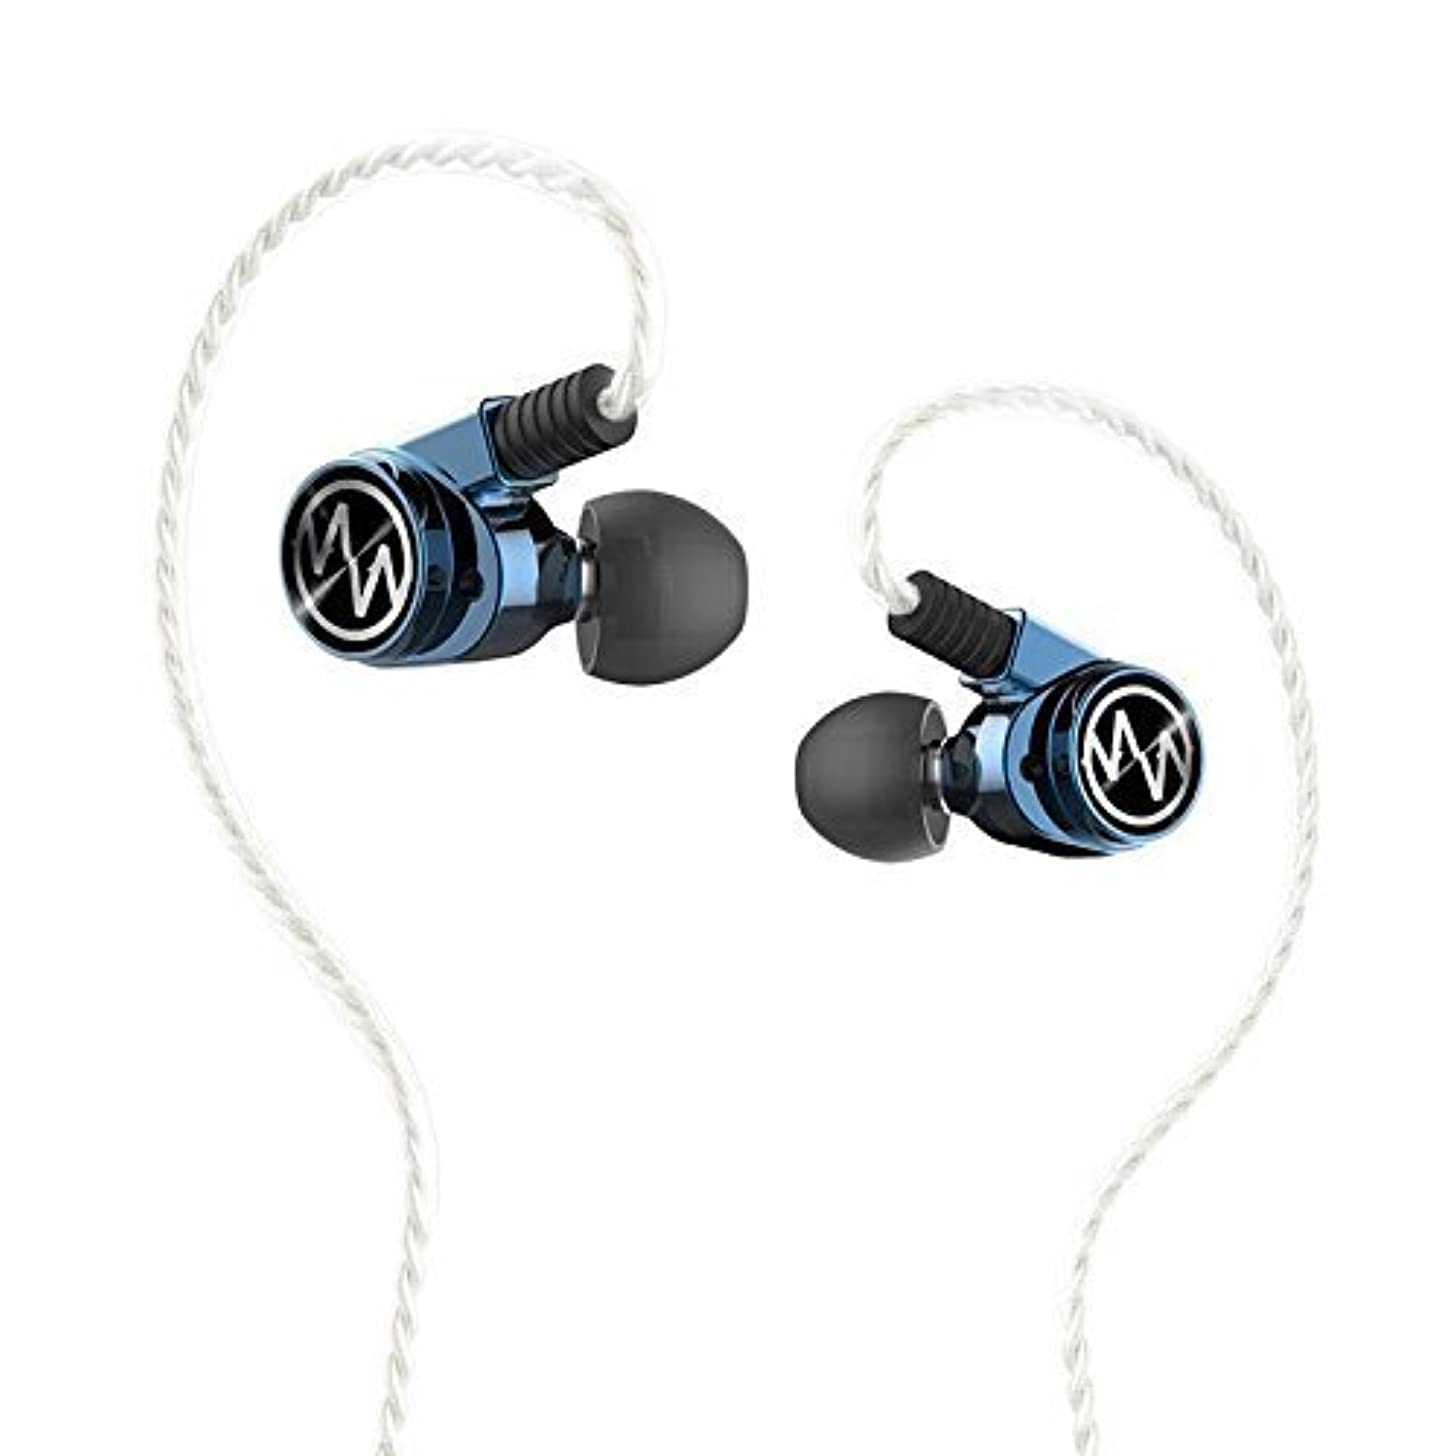 Dilvpoetry Macaw GT600S pro in-ear Earphones dual dynamic balanced armature hybrid MMCX HIFI earphone with 3 Pairs of filters